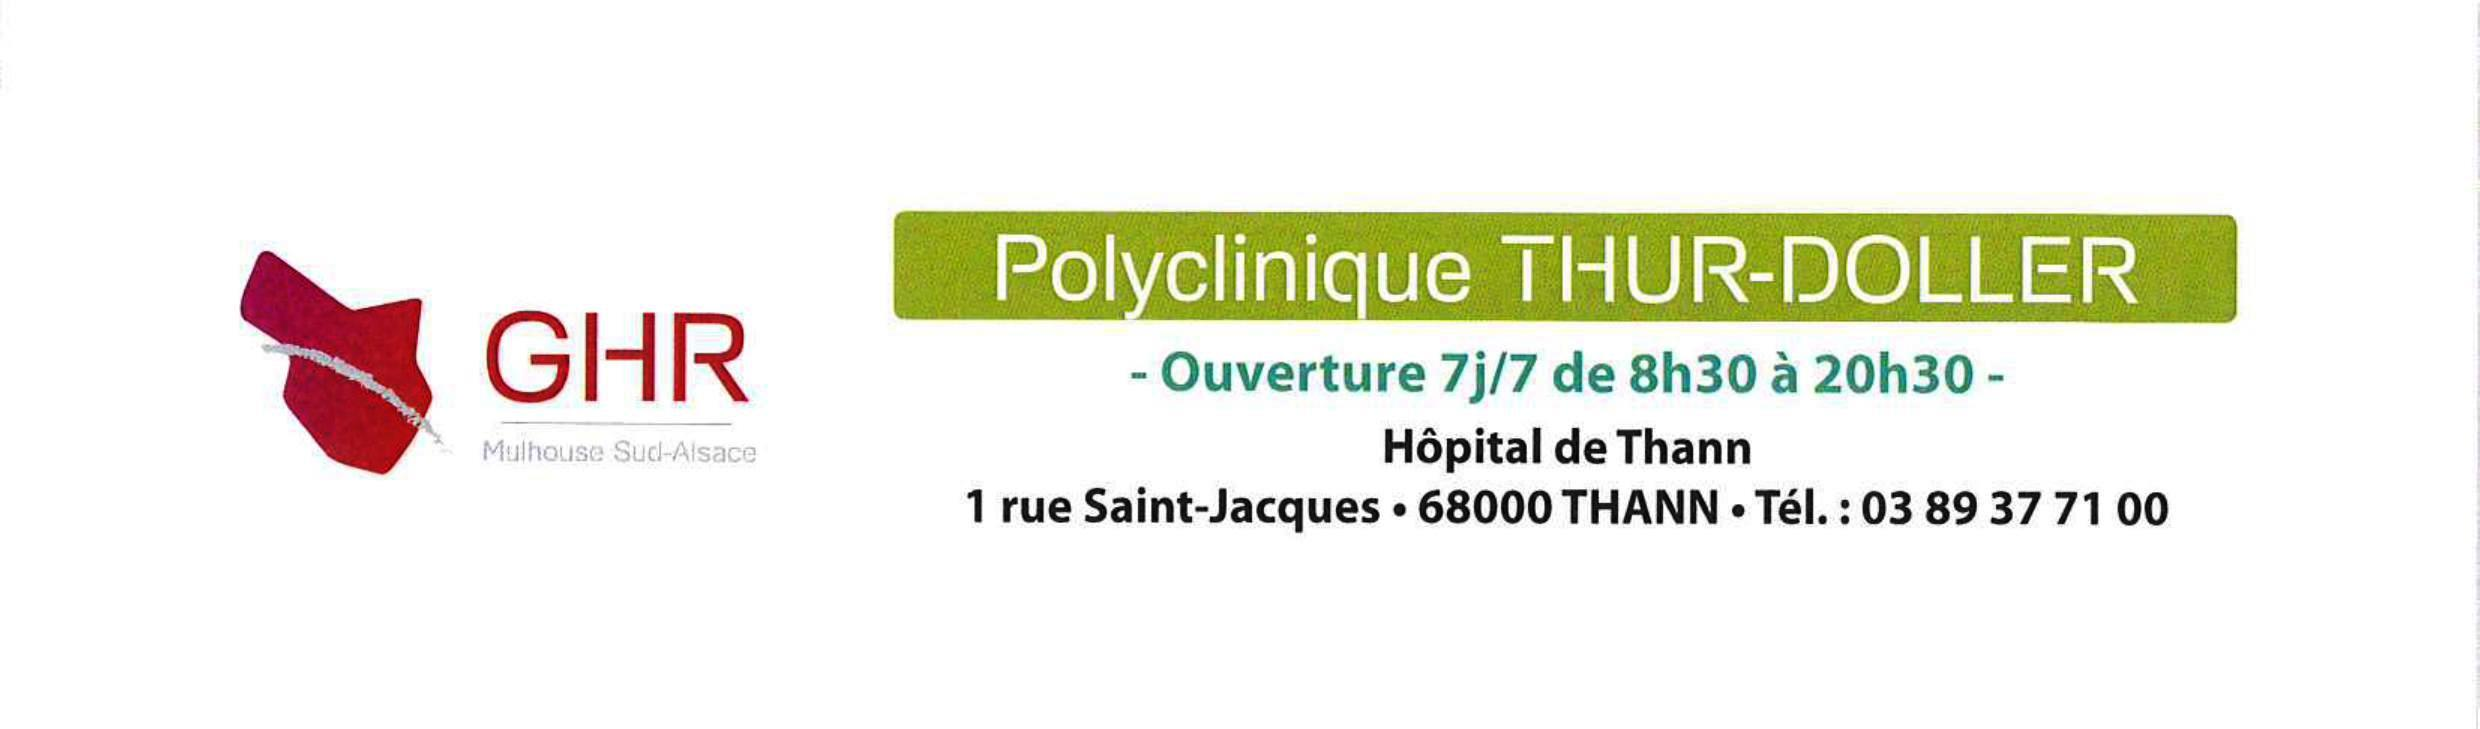 Polyclinique Thur Doller (3)